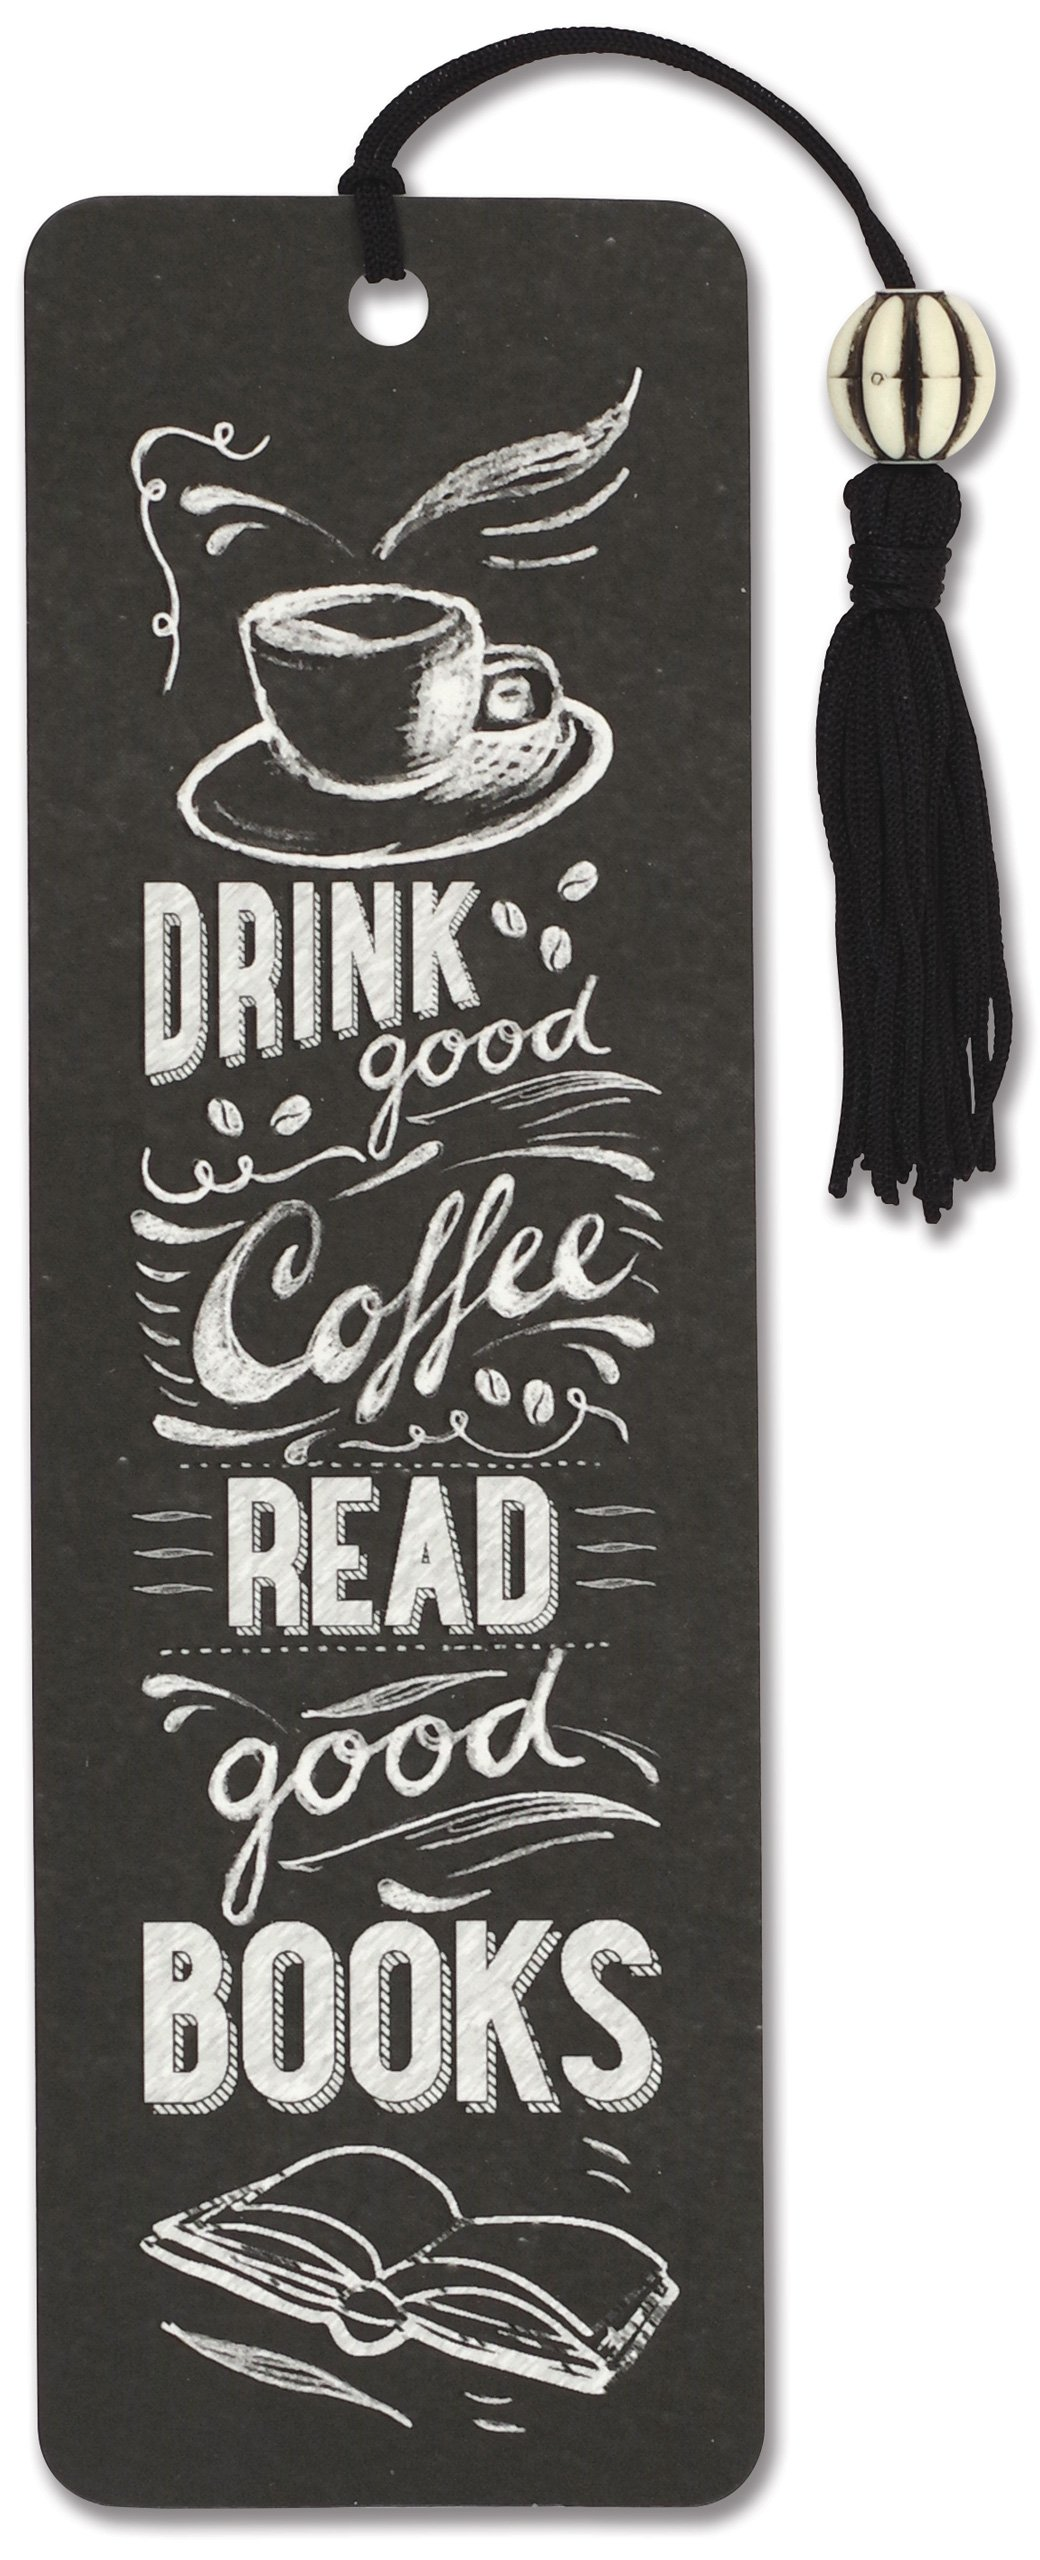 Coffee Books Beaded Bookmark Pauper product image